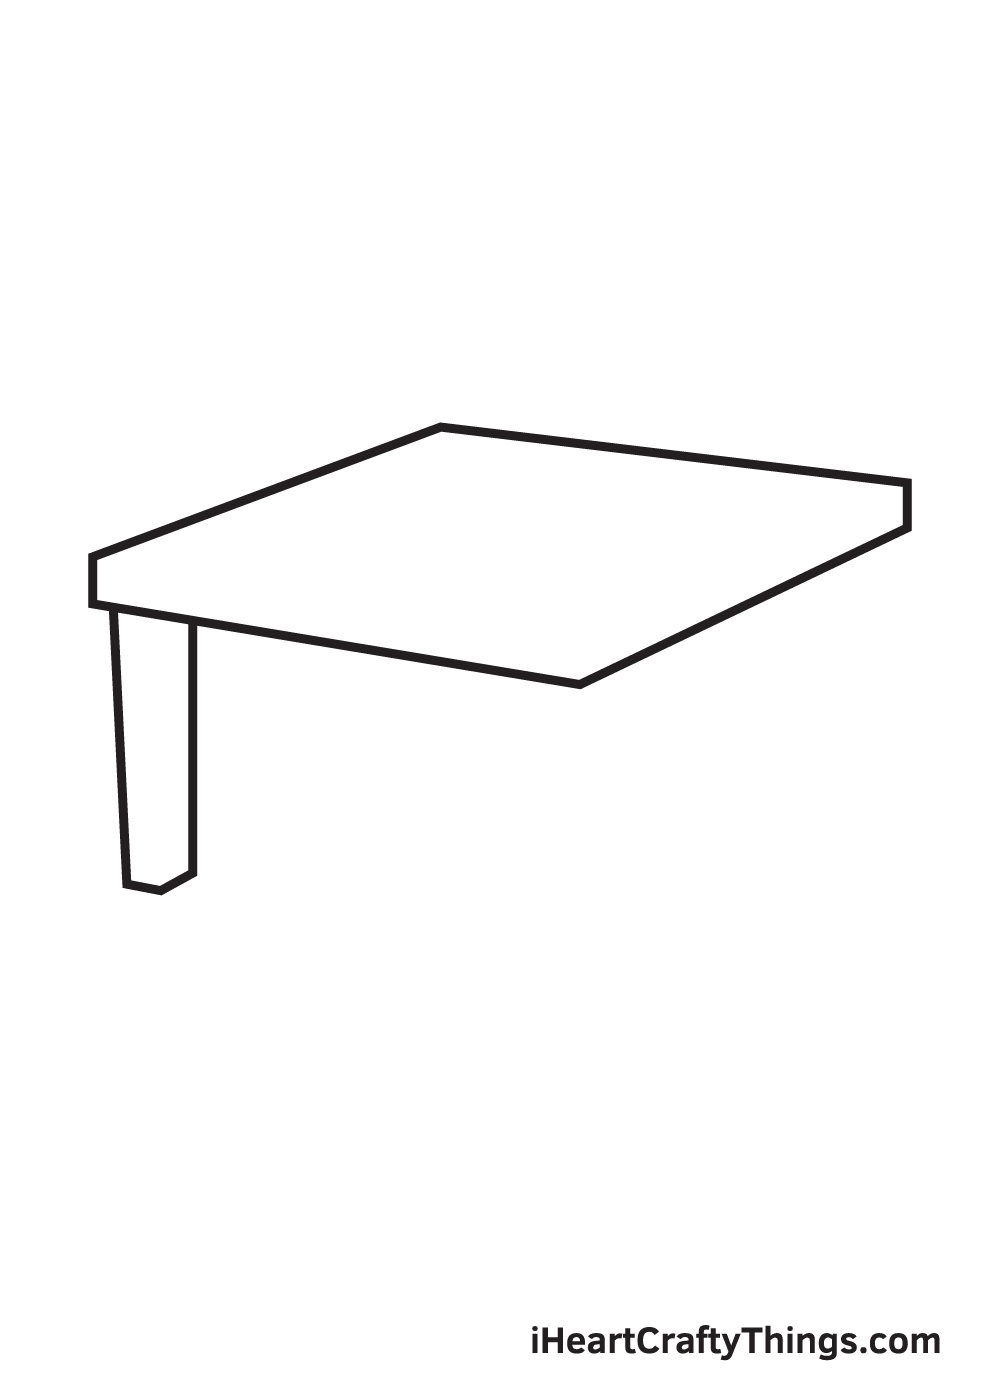 table drawing step 3